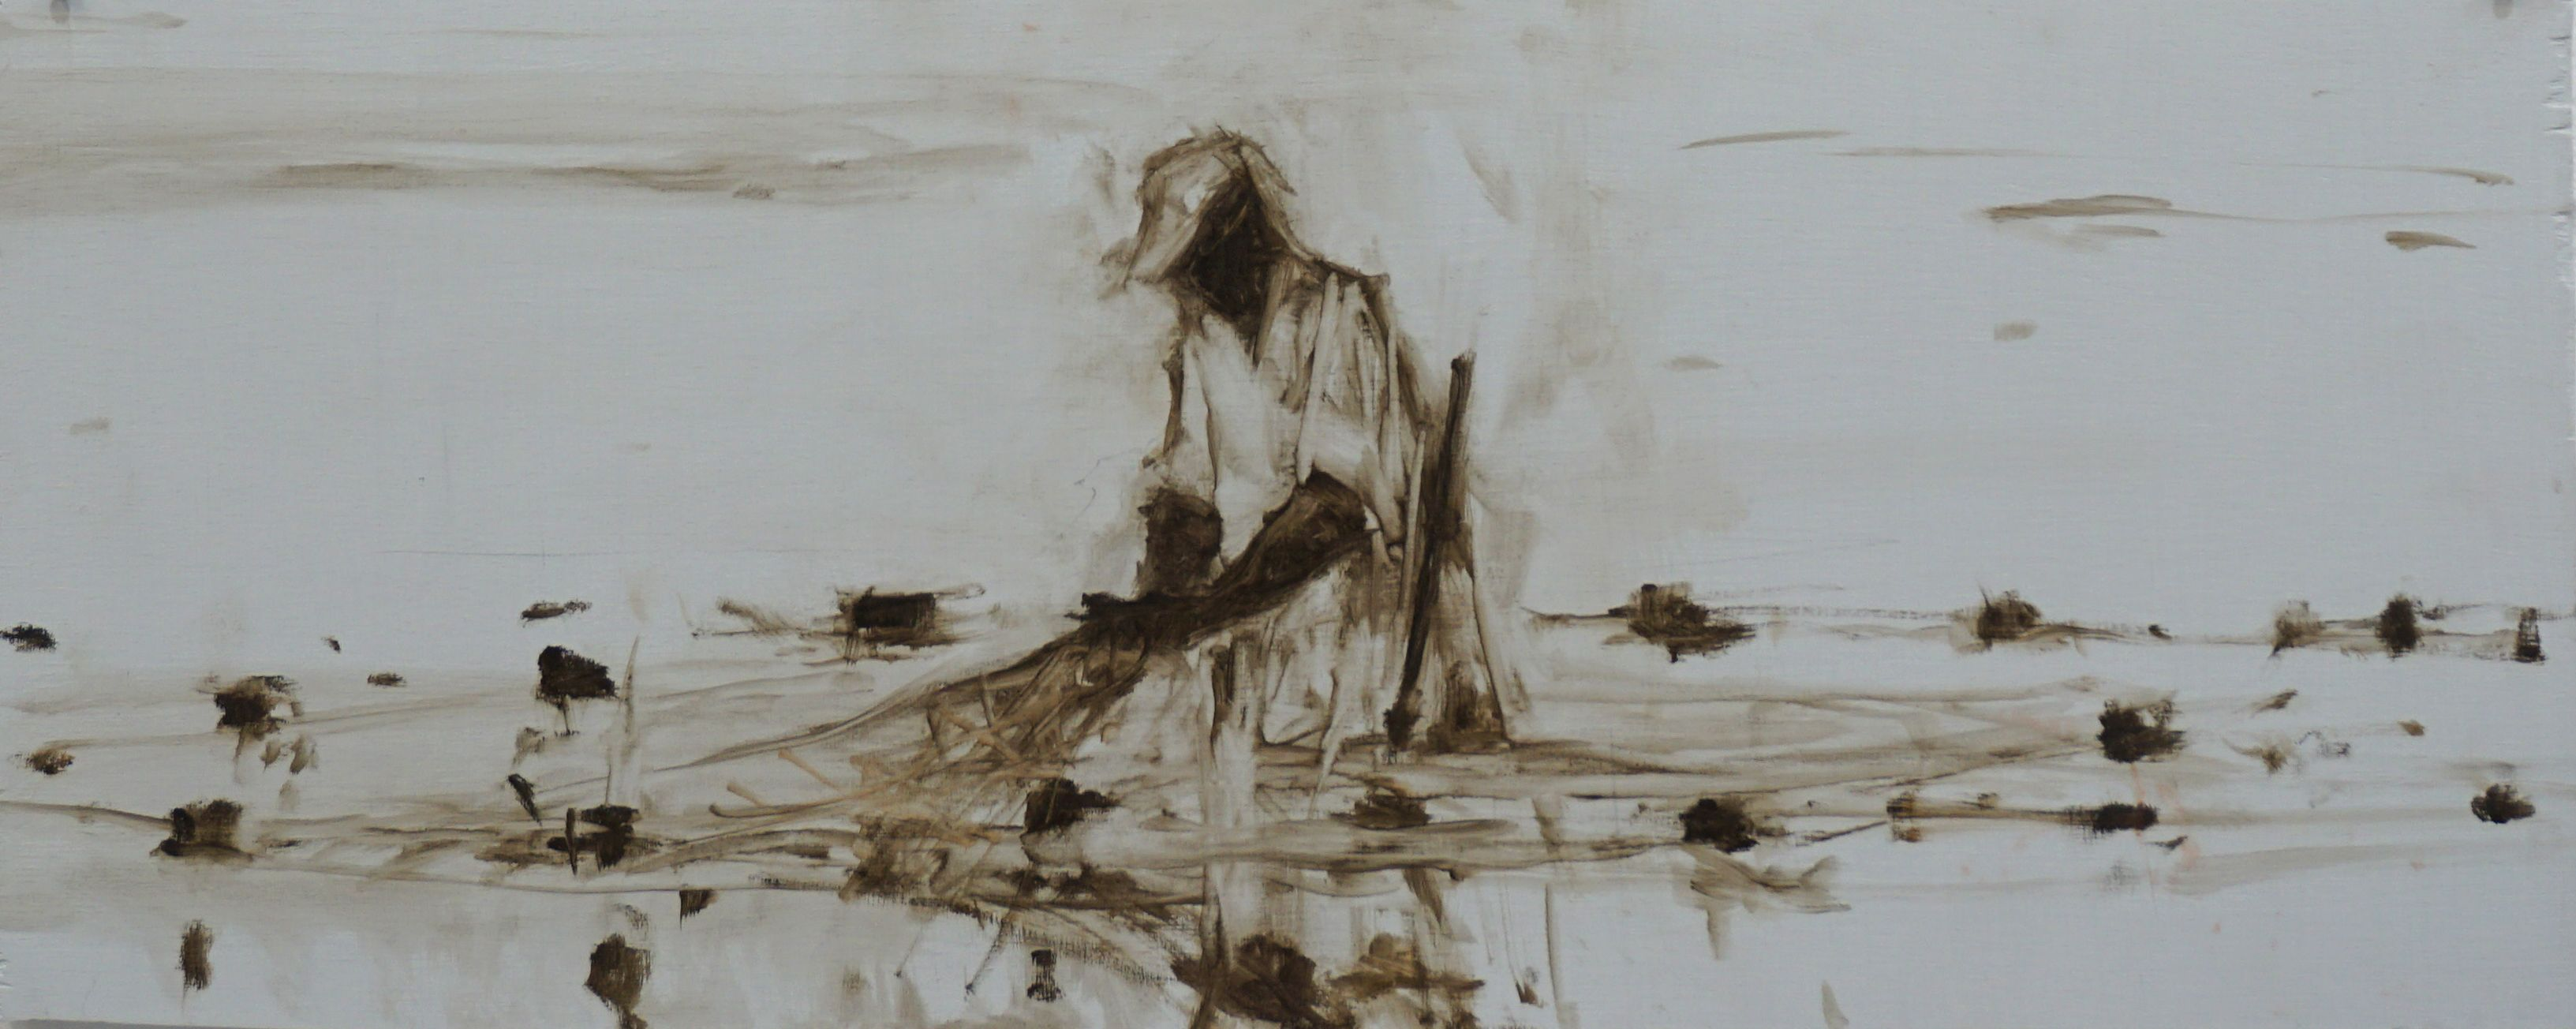 Fisherman XI, Tanzania series,Calo  Carratalá,Contemporary painting